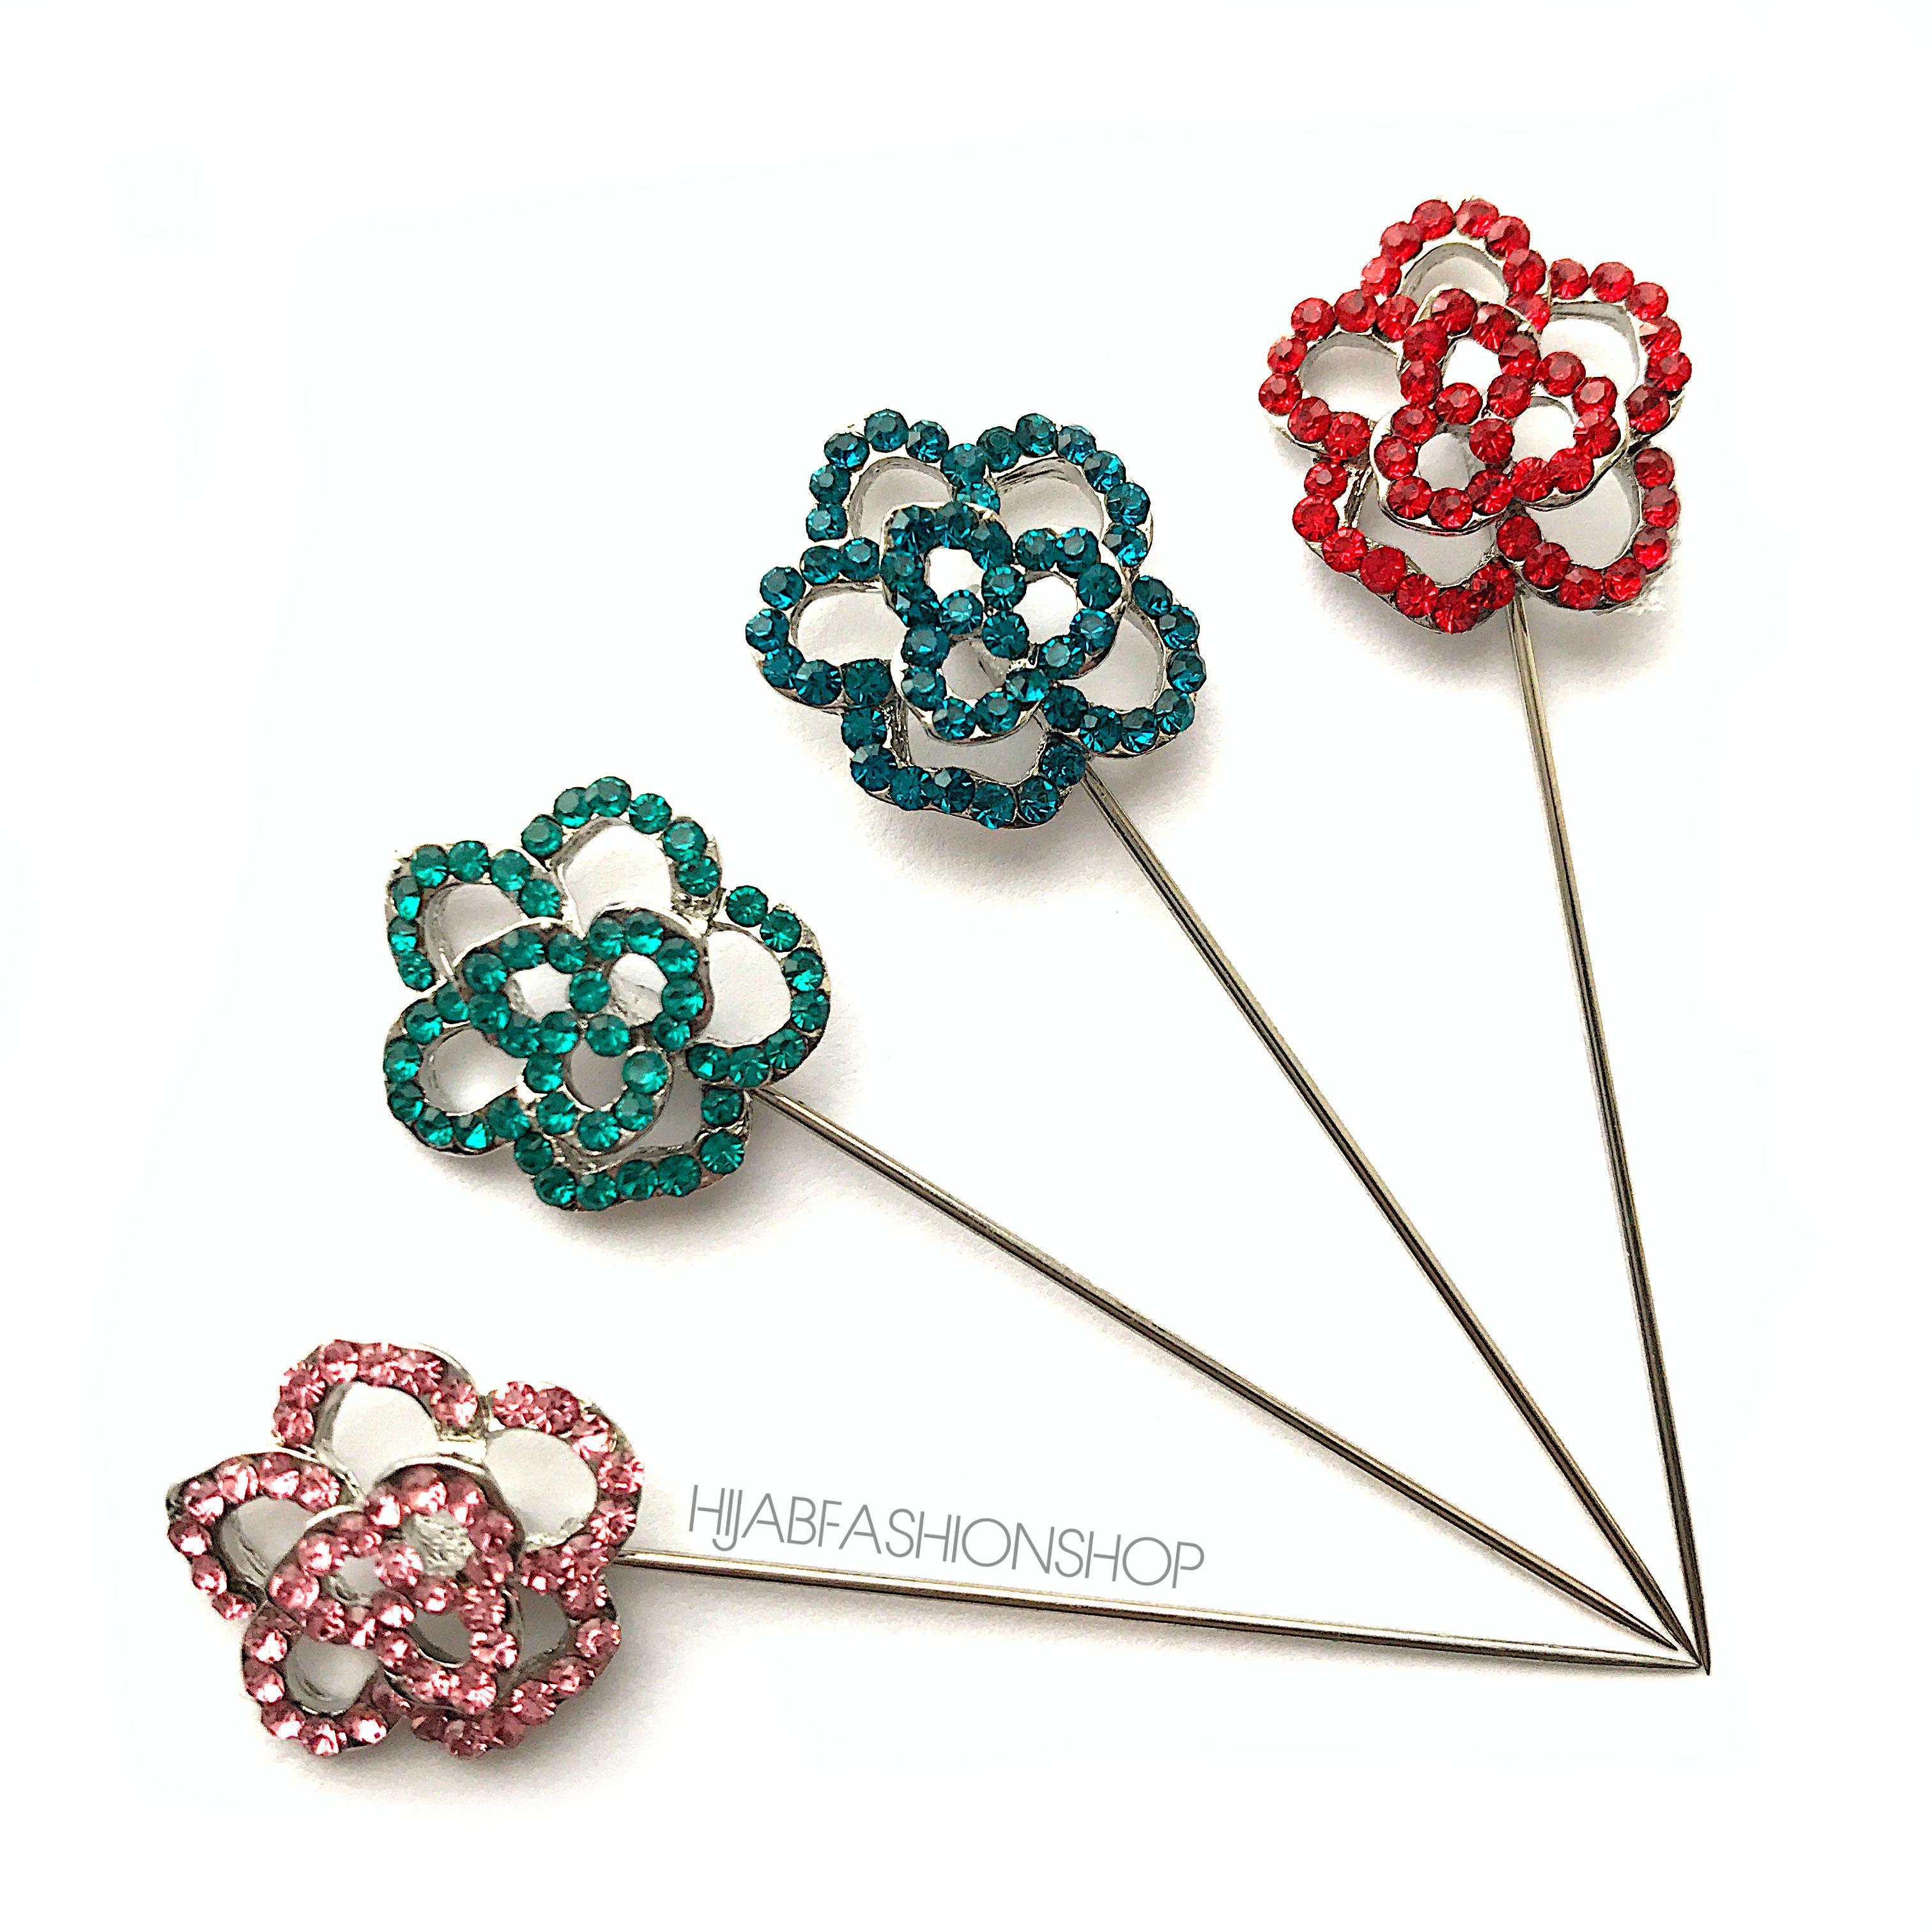 4 hijab stick pins with crystal rose design in variety of colours